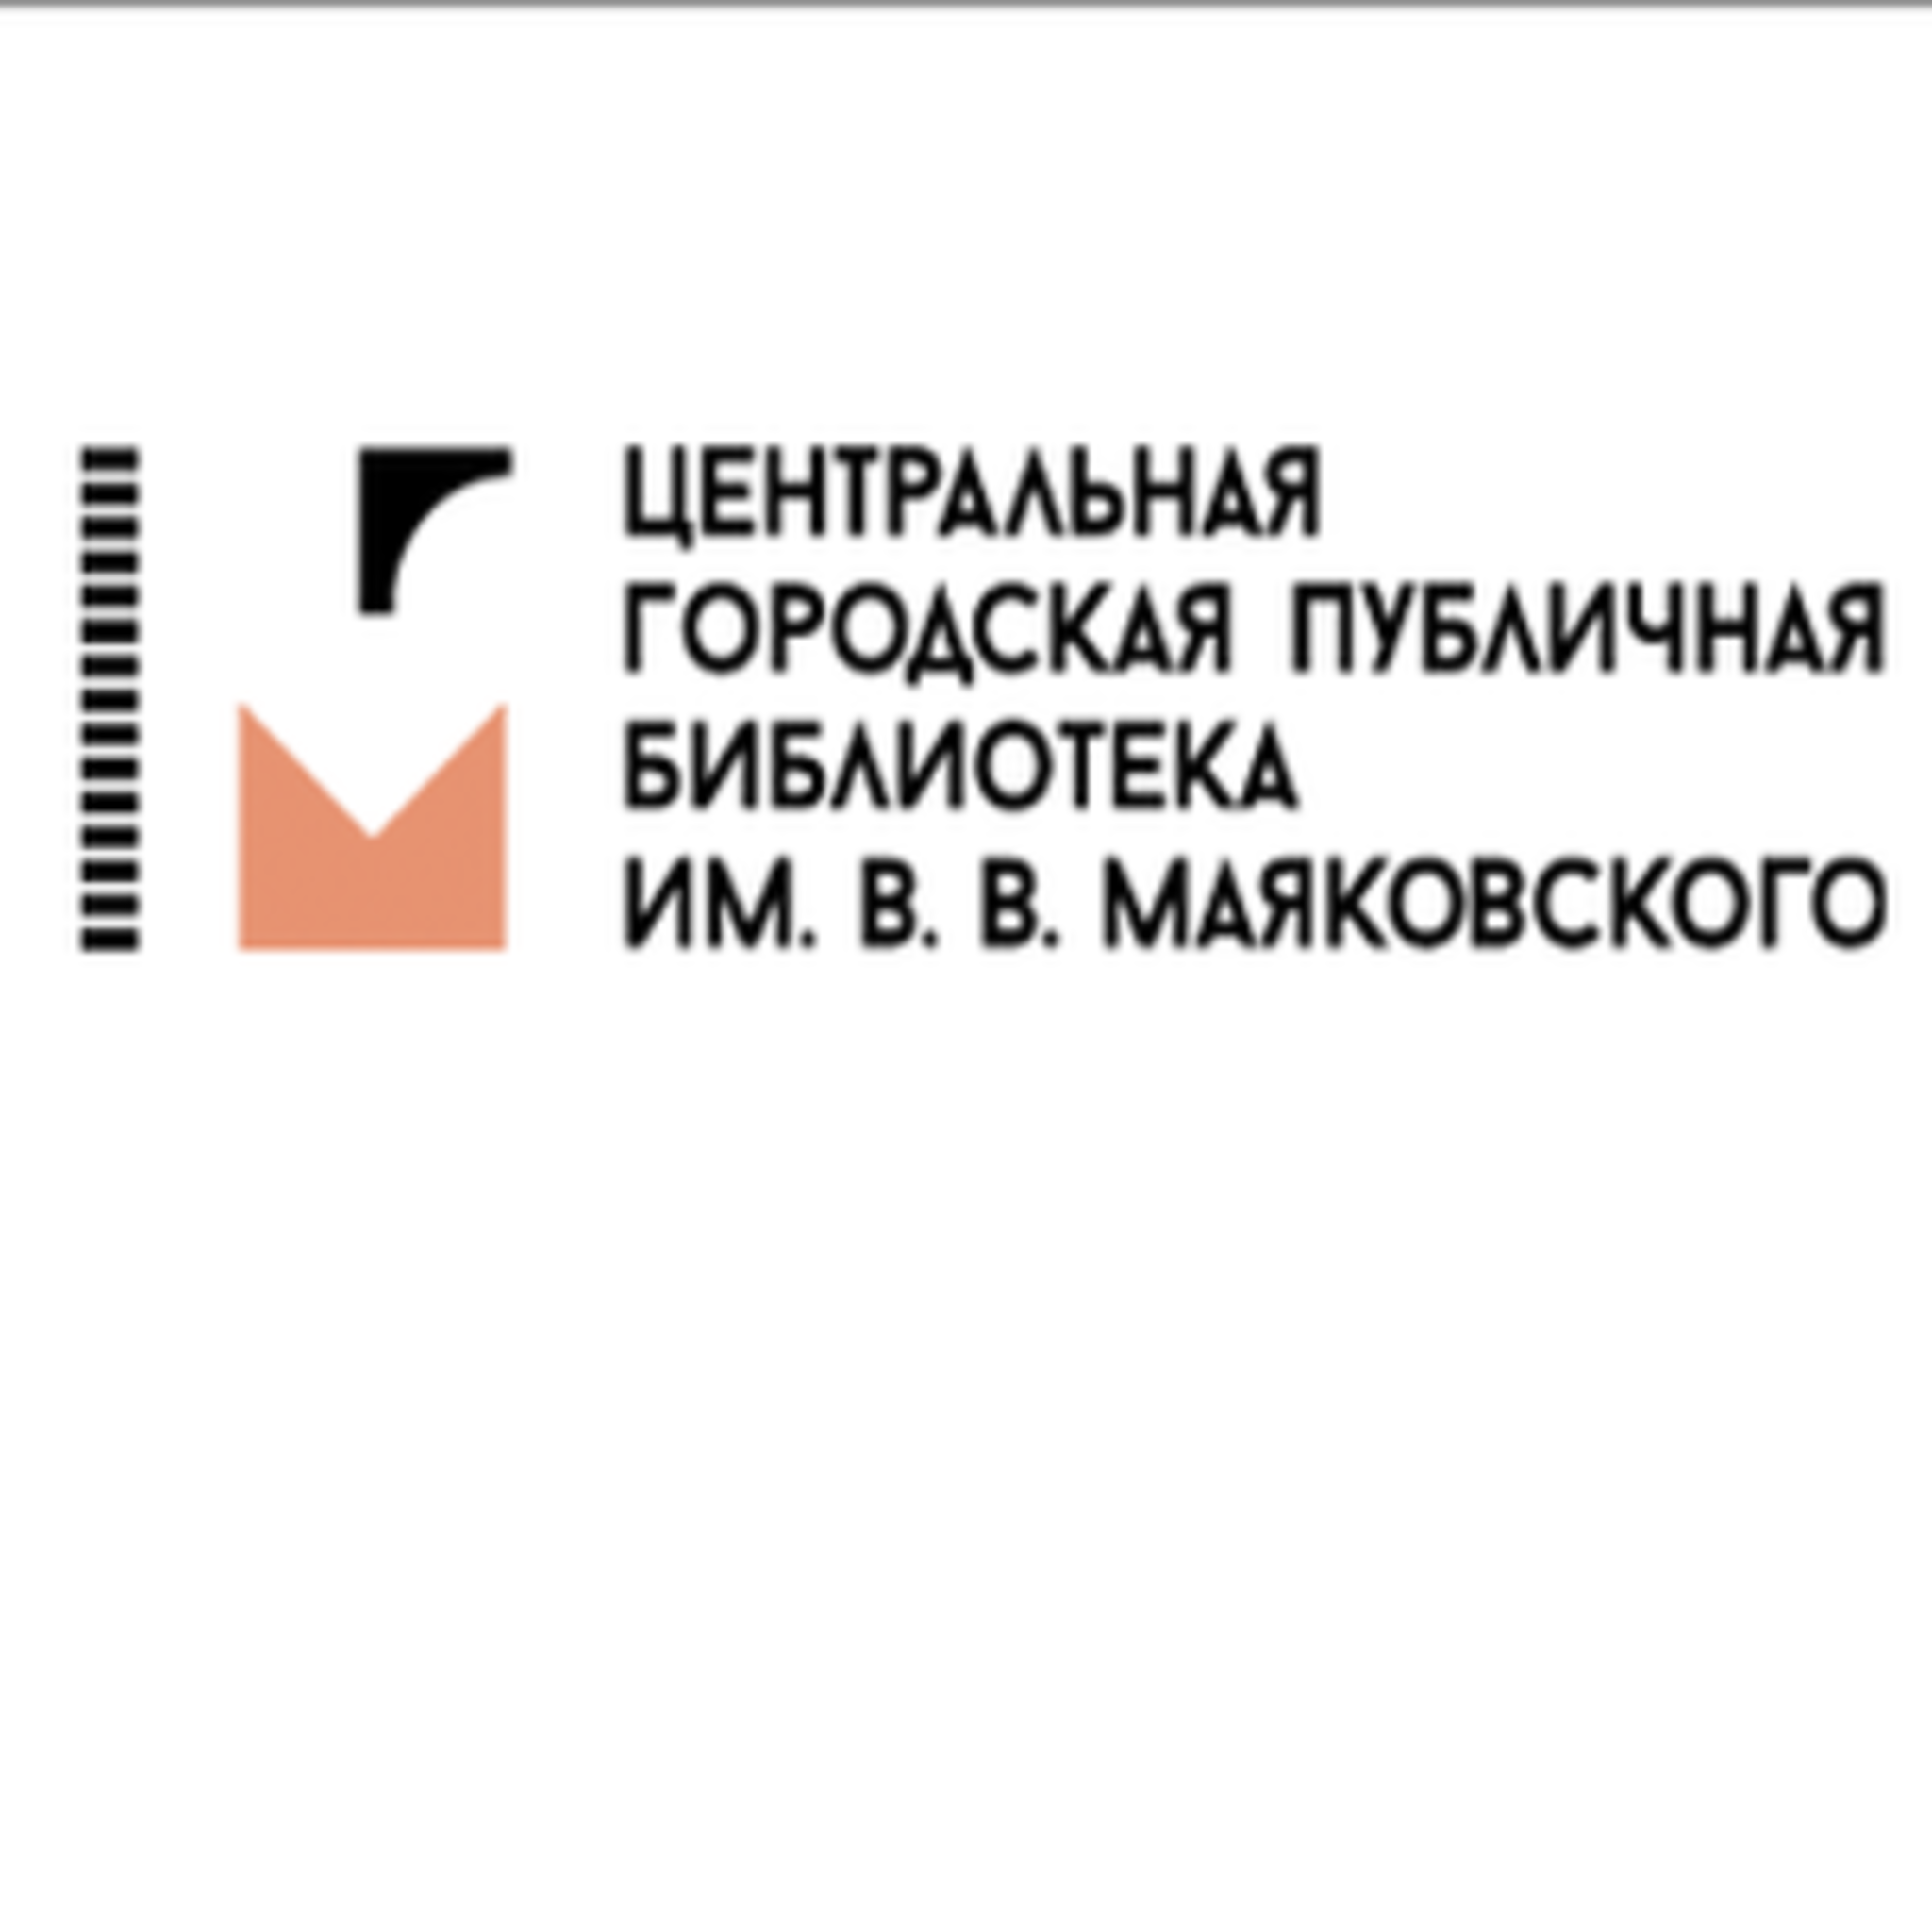 A central city public library named after V. V. Mayakovsky